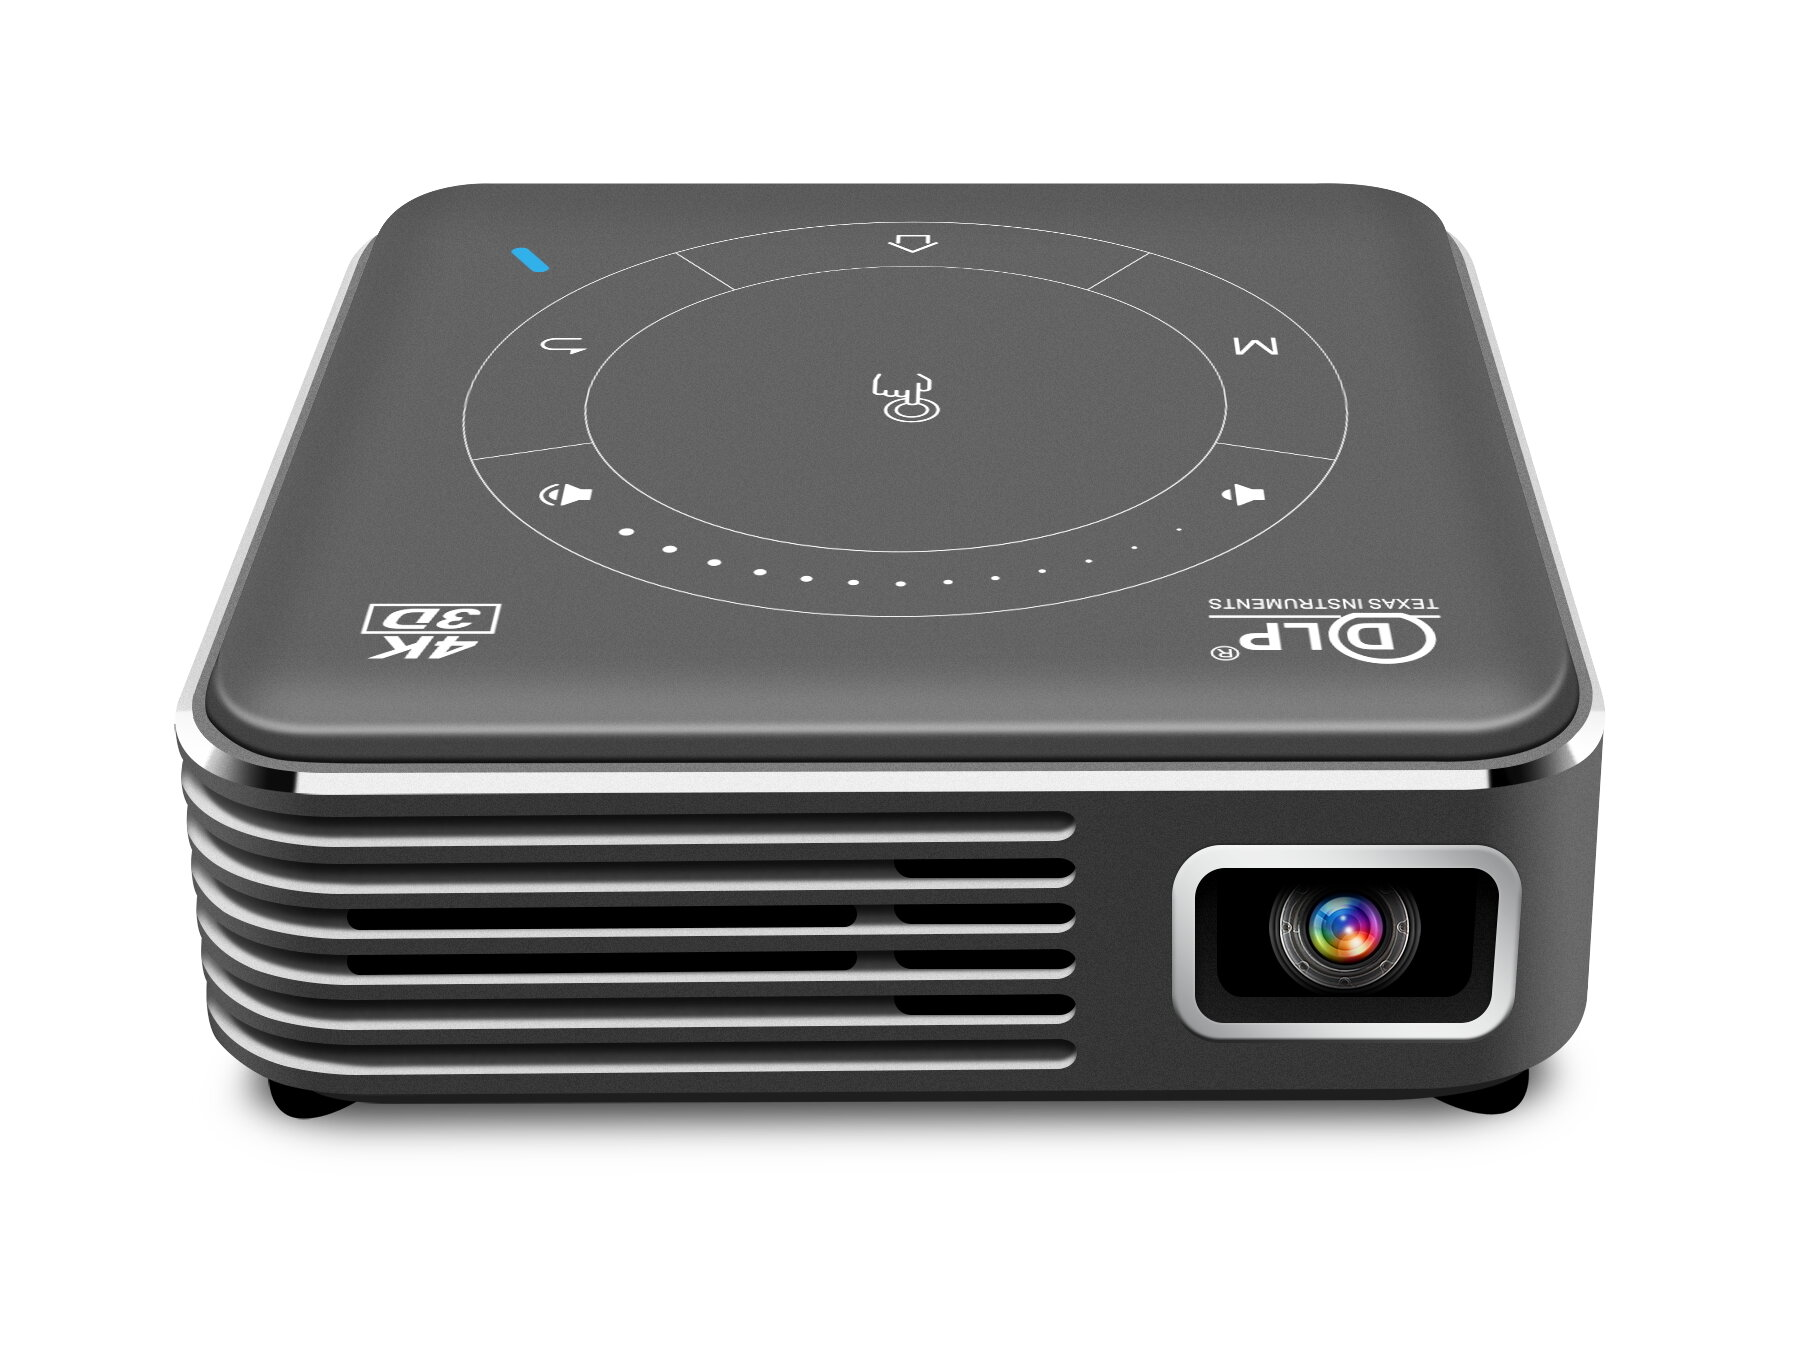 P11 DLP Mini Projector Android 9.0 4GB+32GB 1000 Lumens Smart Pocket 3D Support Miracast Wi-Fi Home Video Projector Beamer